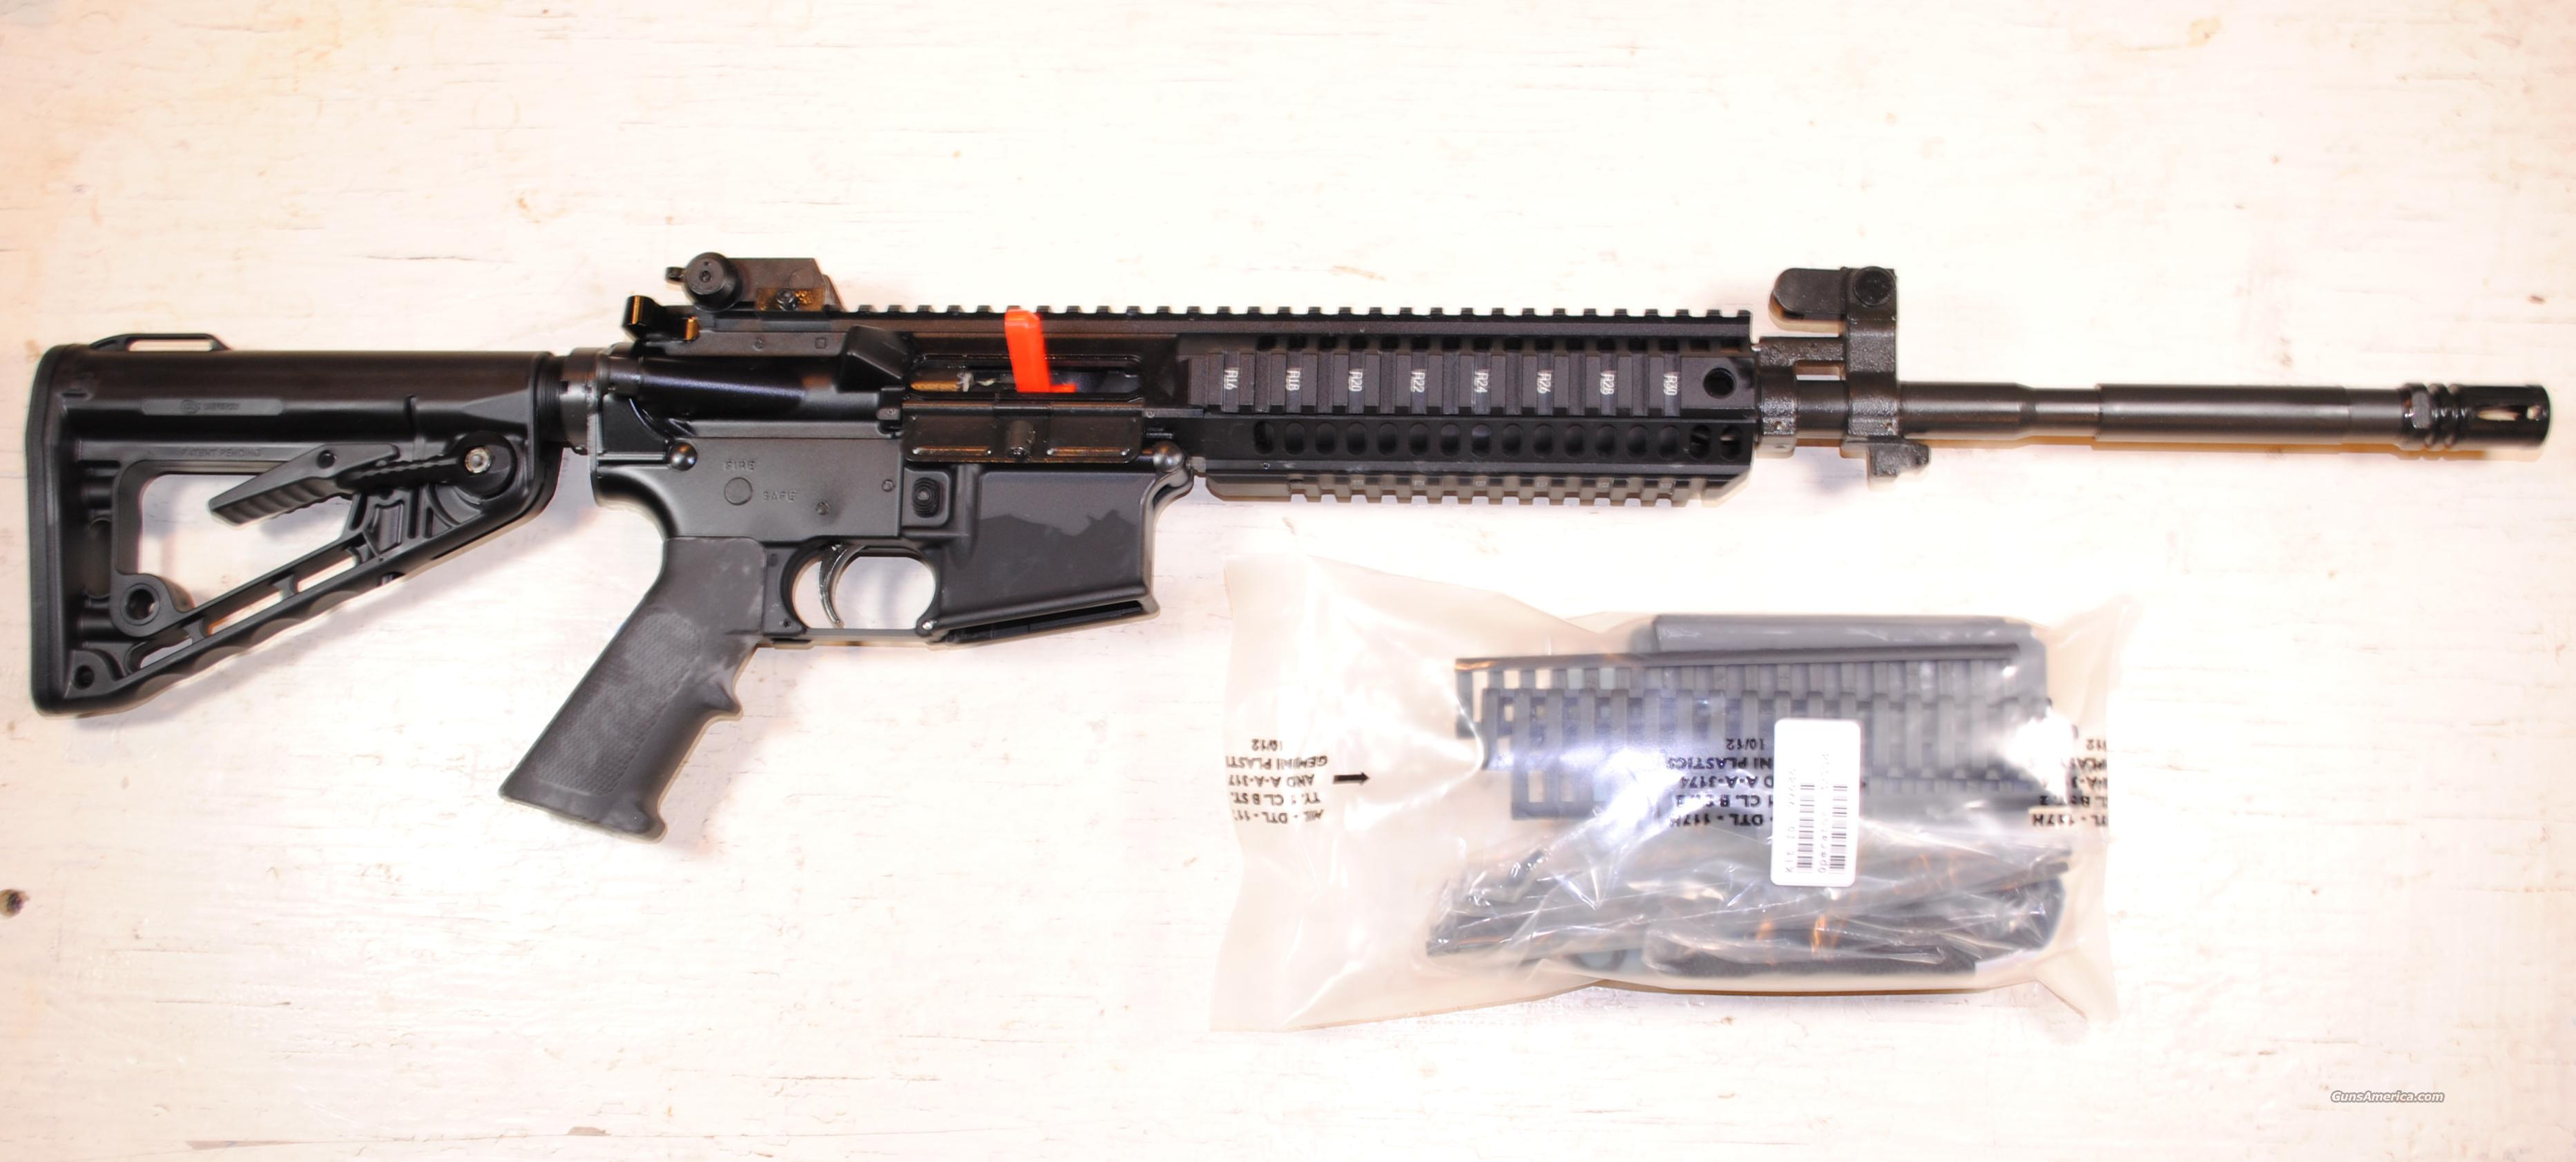 NEW! COLT LE6940 CARBINE  Guns > Rifles > Colt Military/Tactical Rifles